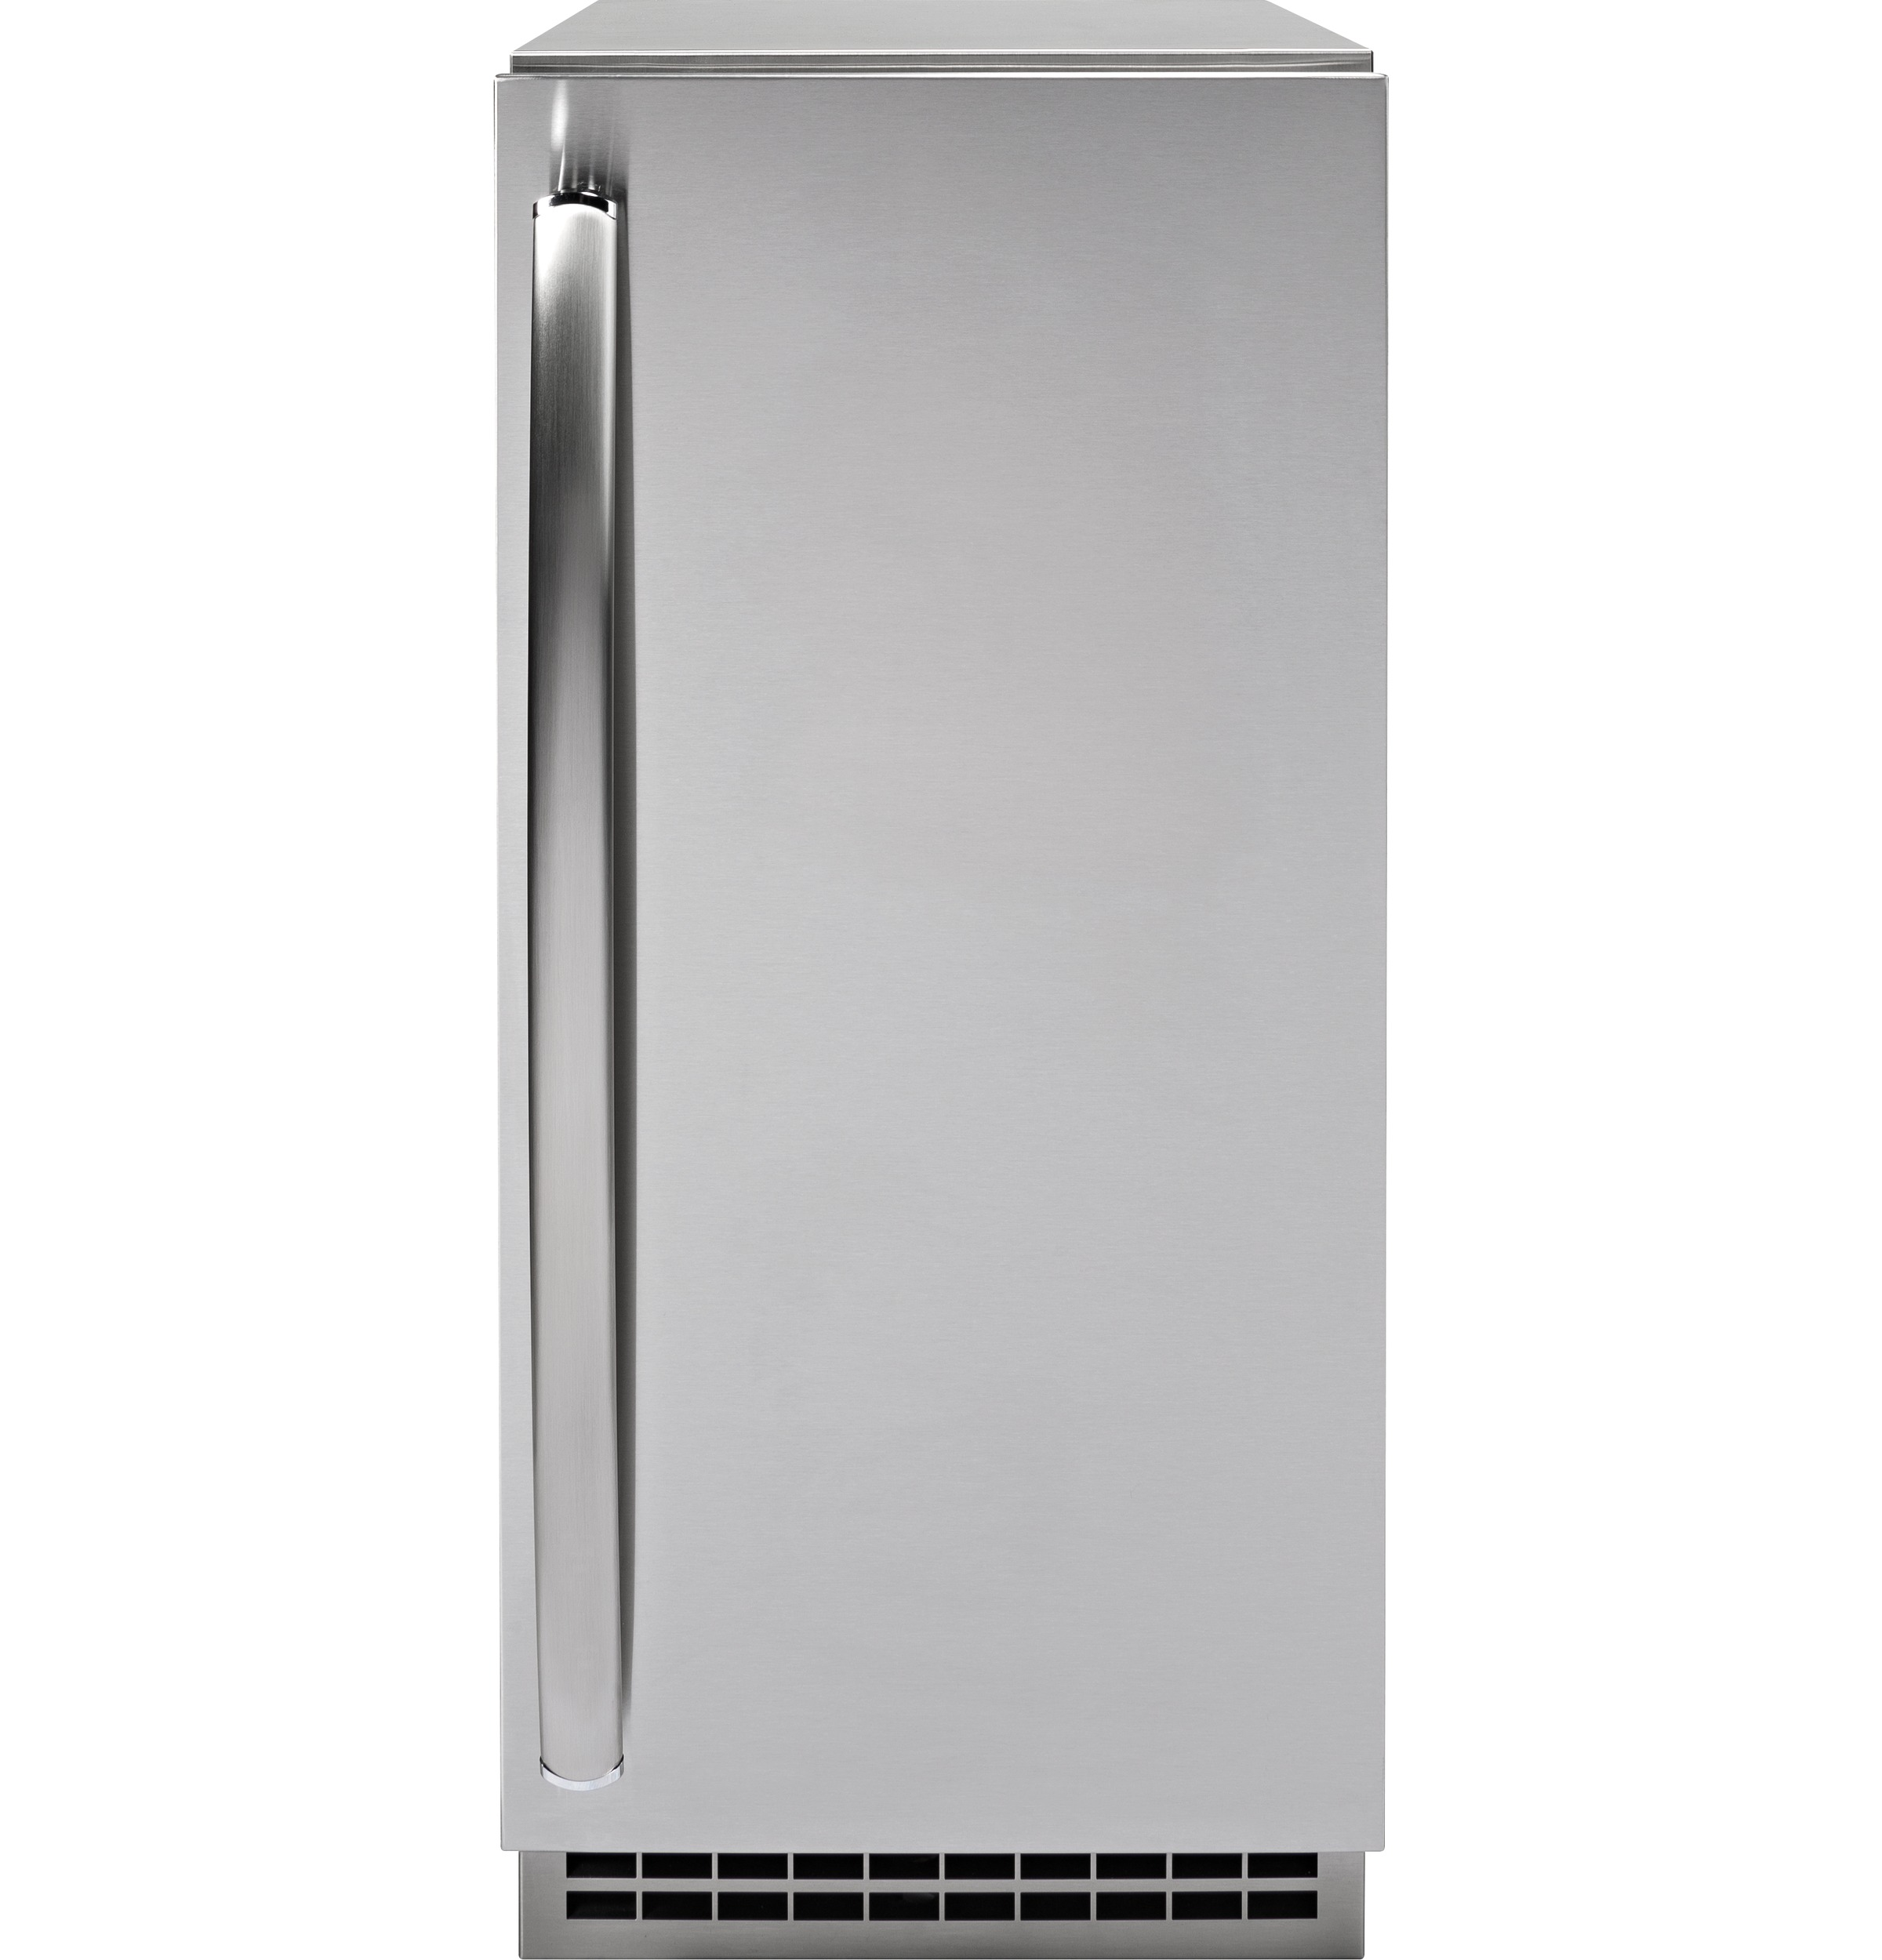 GE Profile GE Profile Series Stainless Steel Ice Maker Door Kit (door panel and handle only)